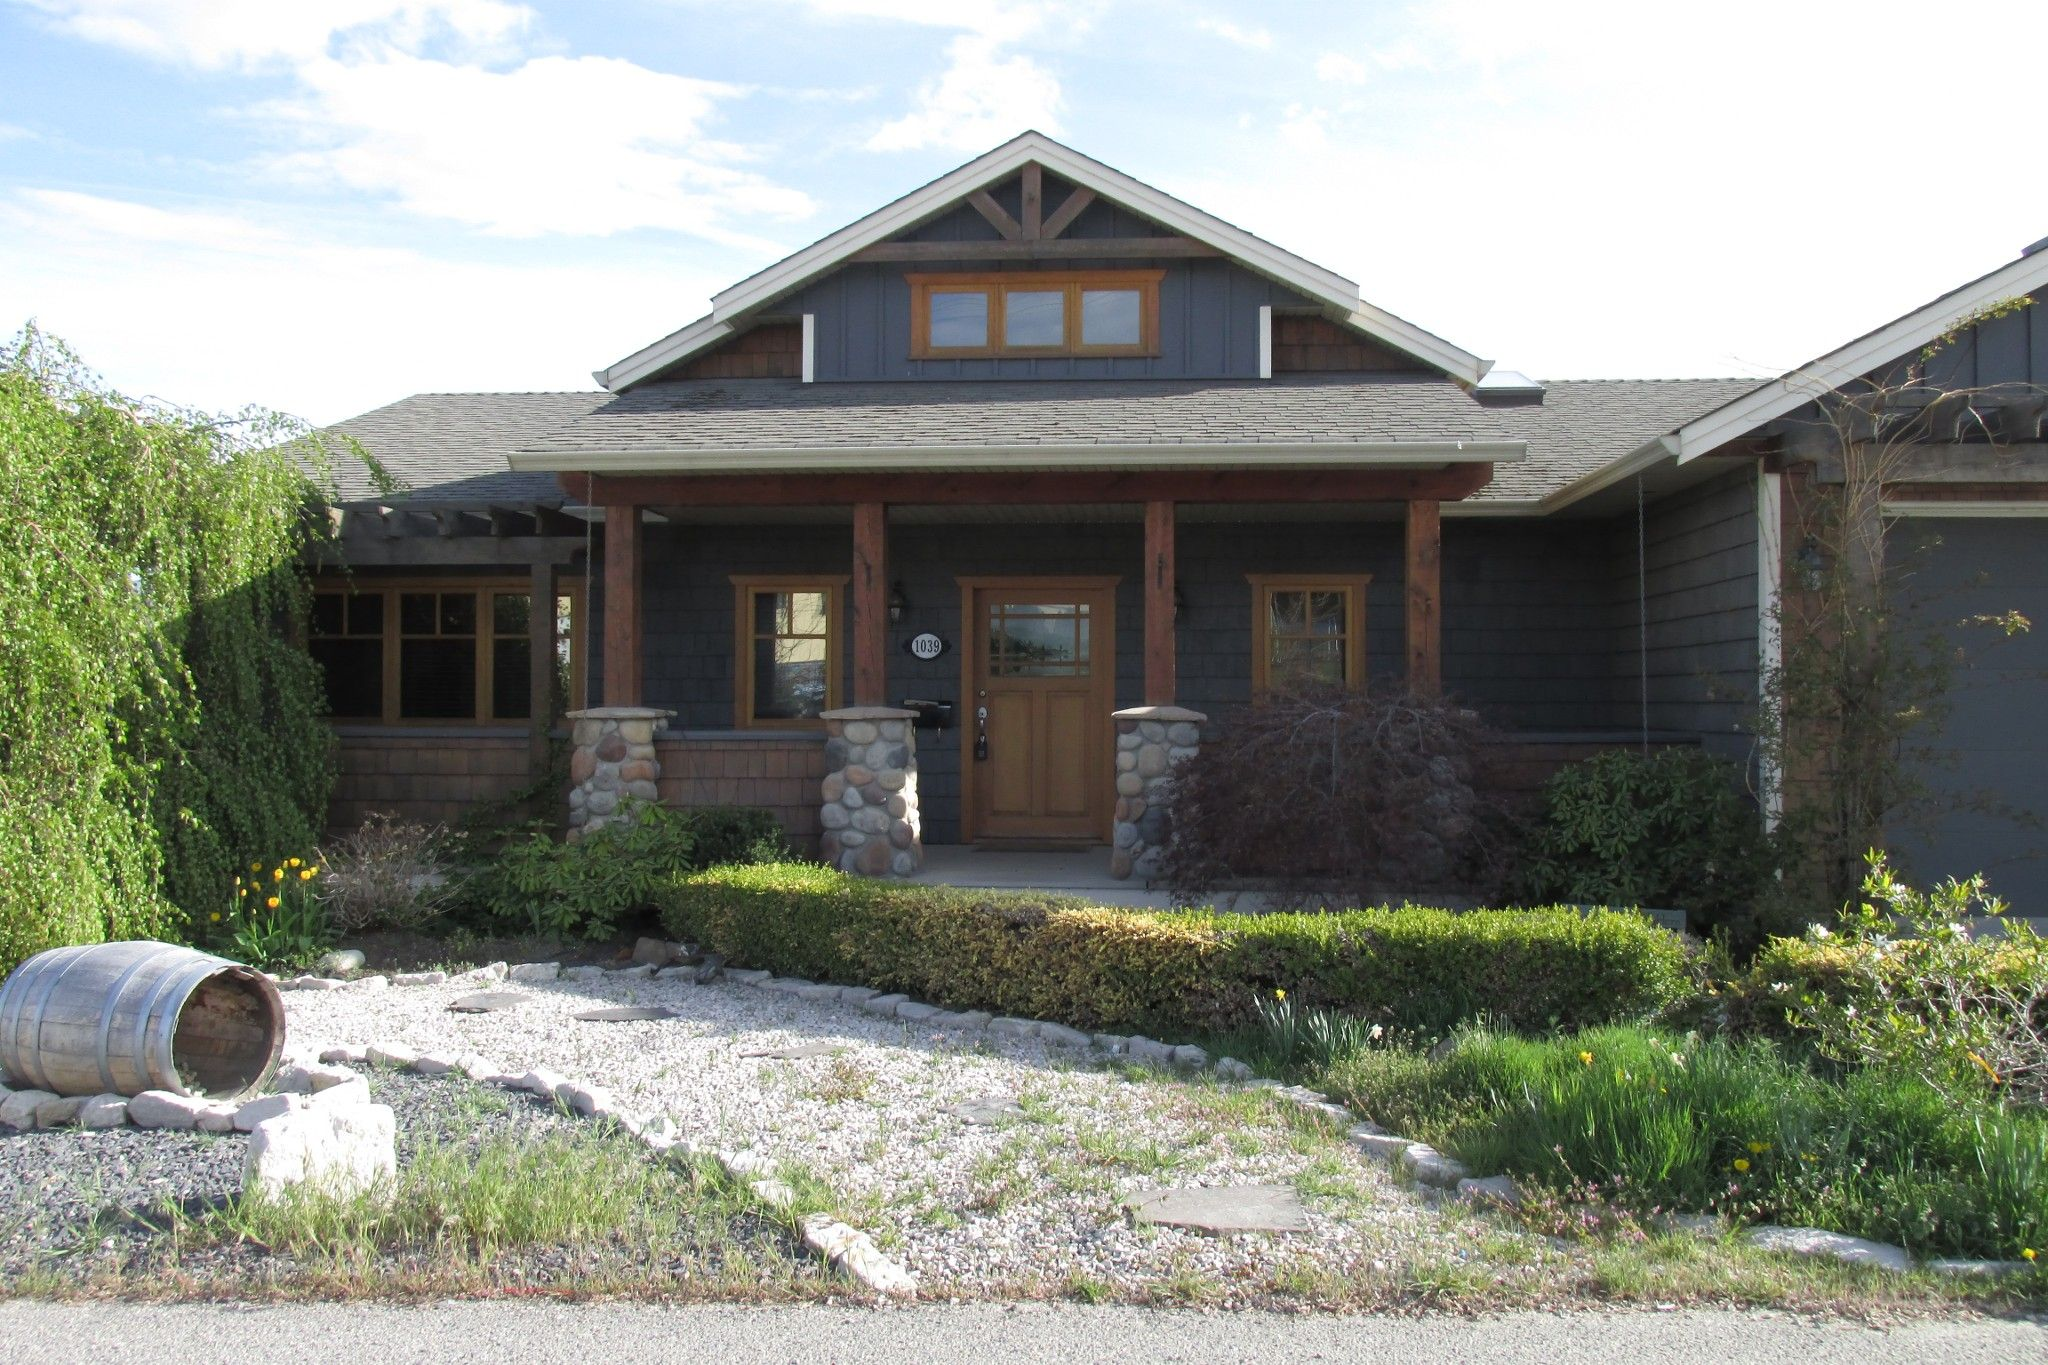 Photo 1: Photos: 1039 Hudson Rd. in West Kelowna: Lakeview Heights House for sale : MLS®# 10181783